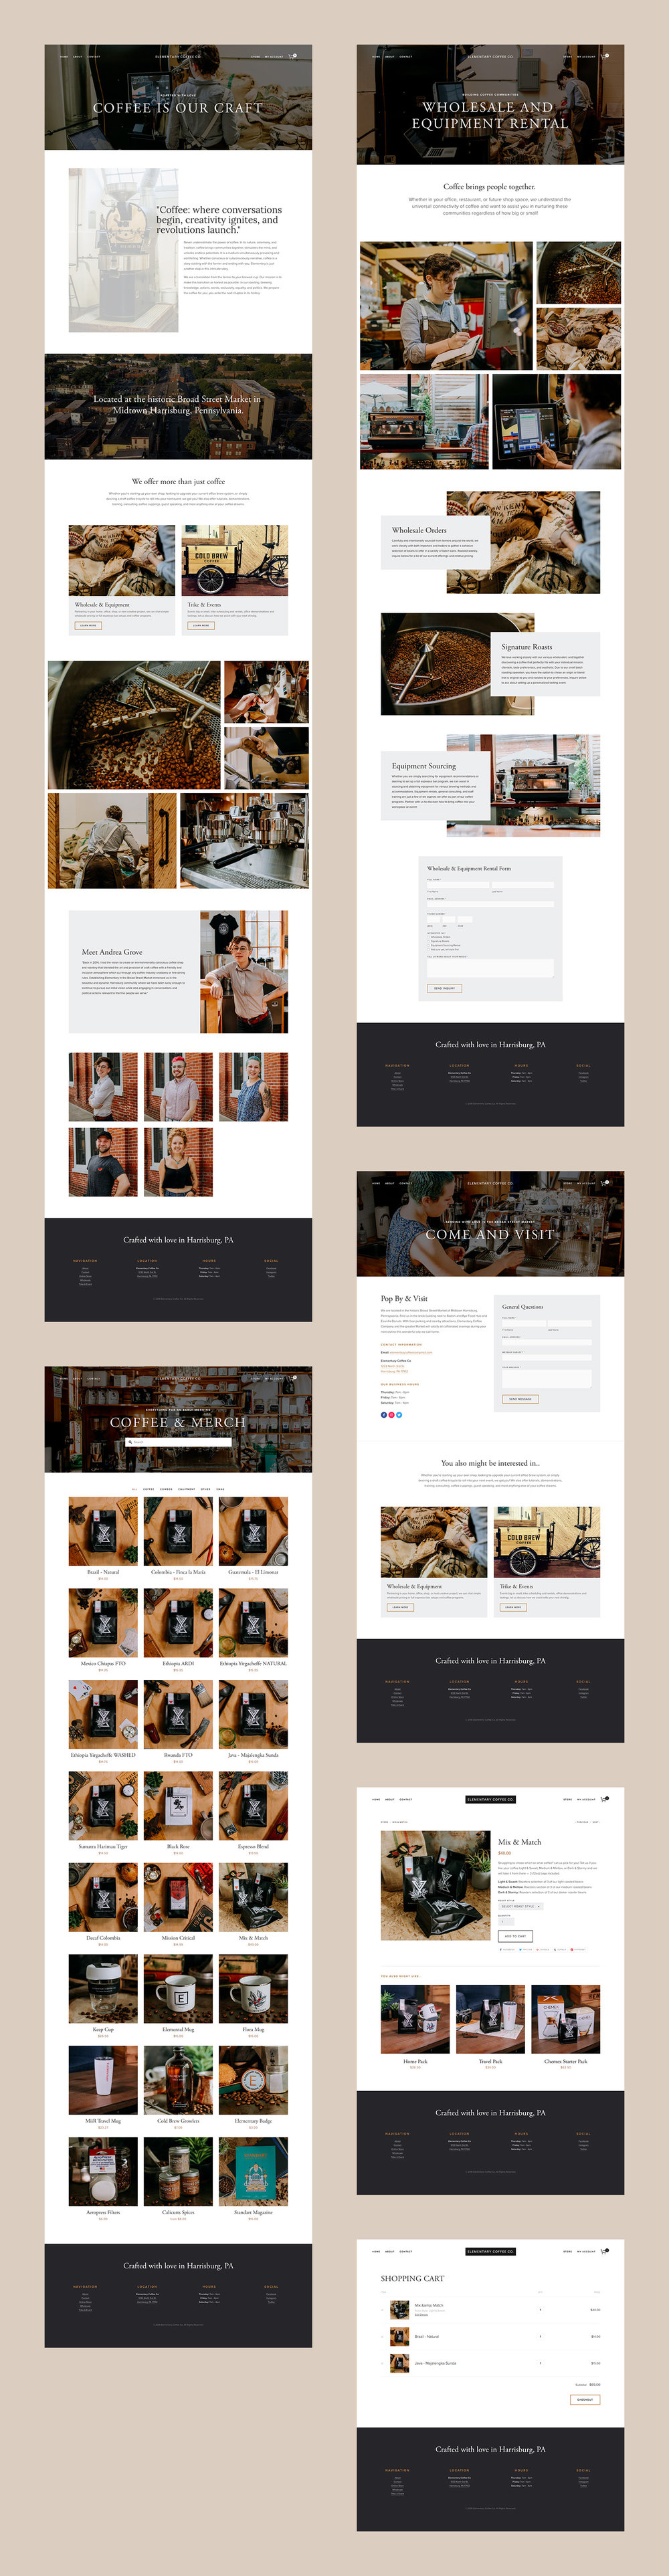 Squarespace Coffee Shop Website Screenshot 2